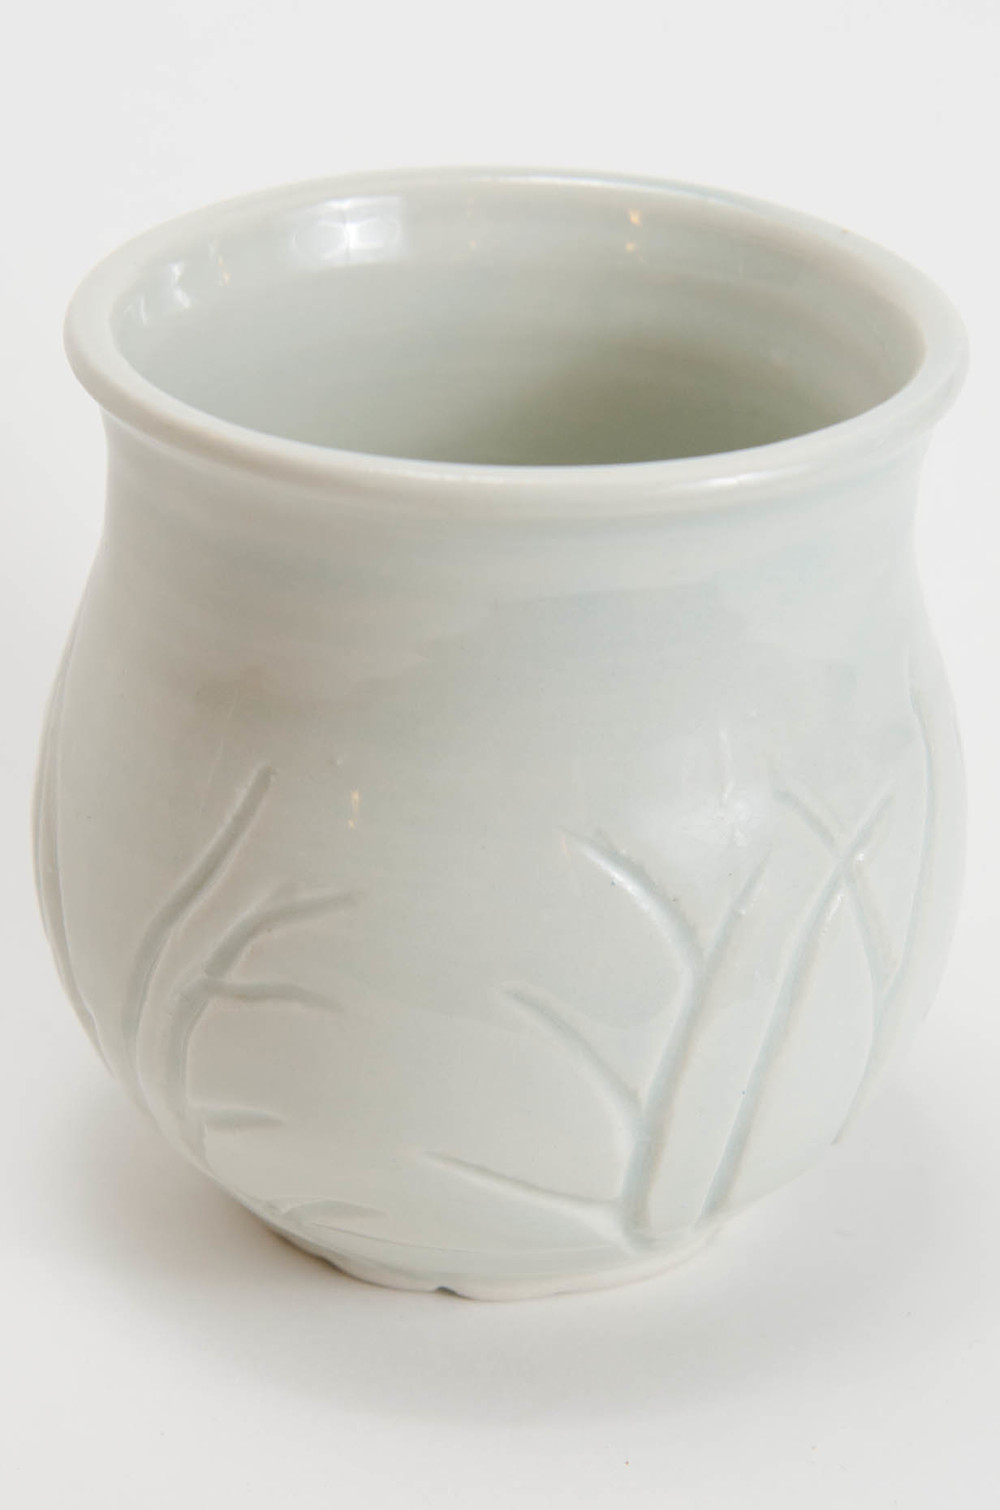 ClairePottery-23.jpg